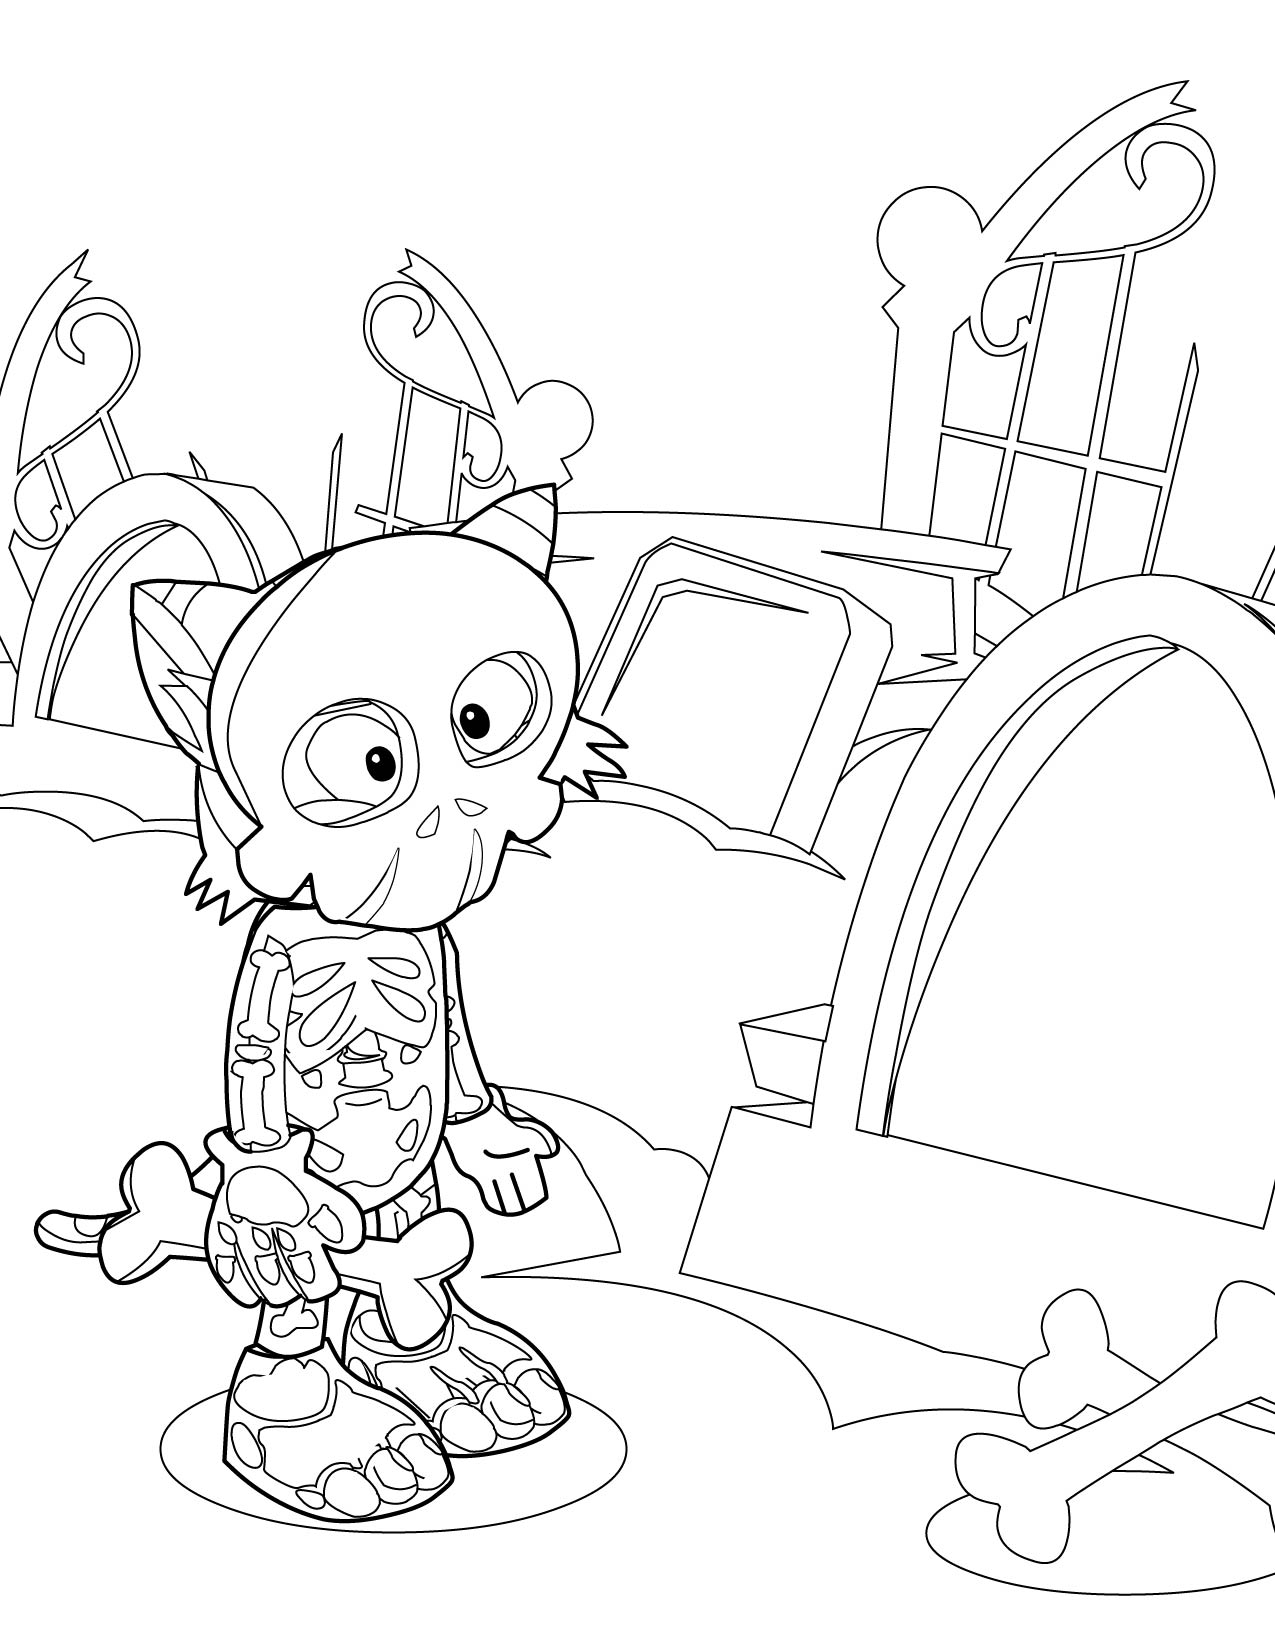 free axial skeleton coloring pages - photo#14